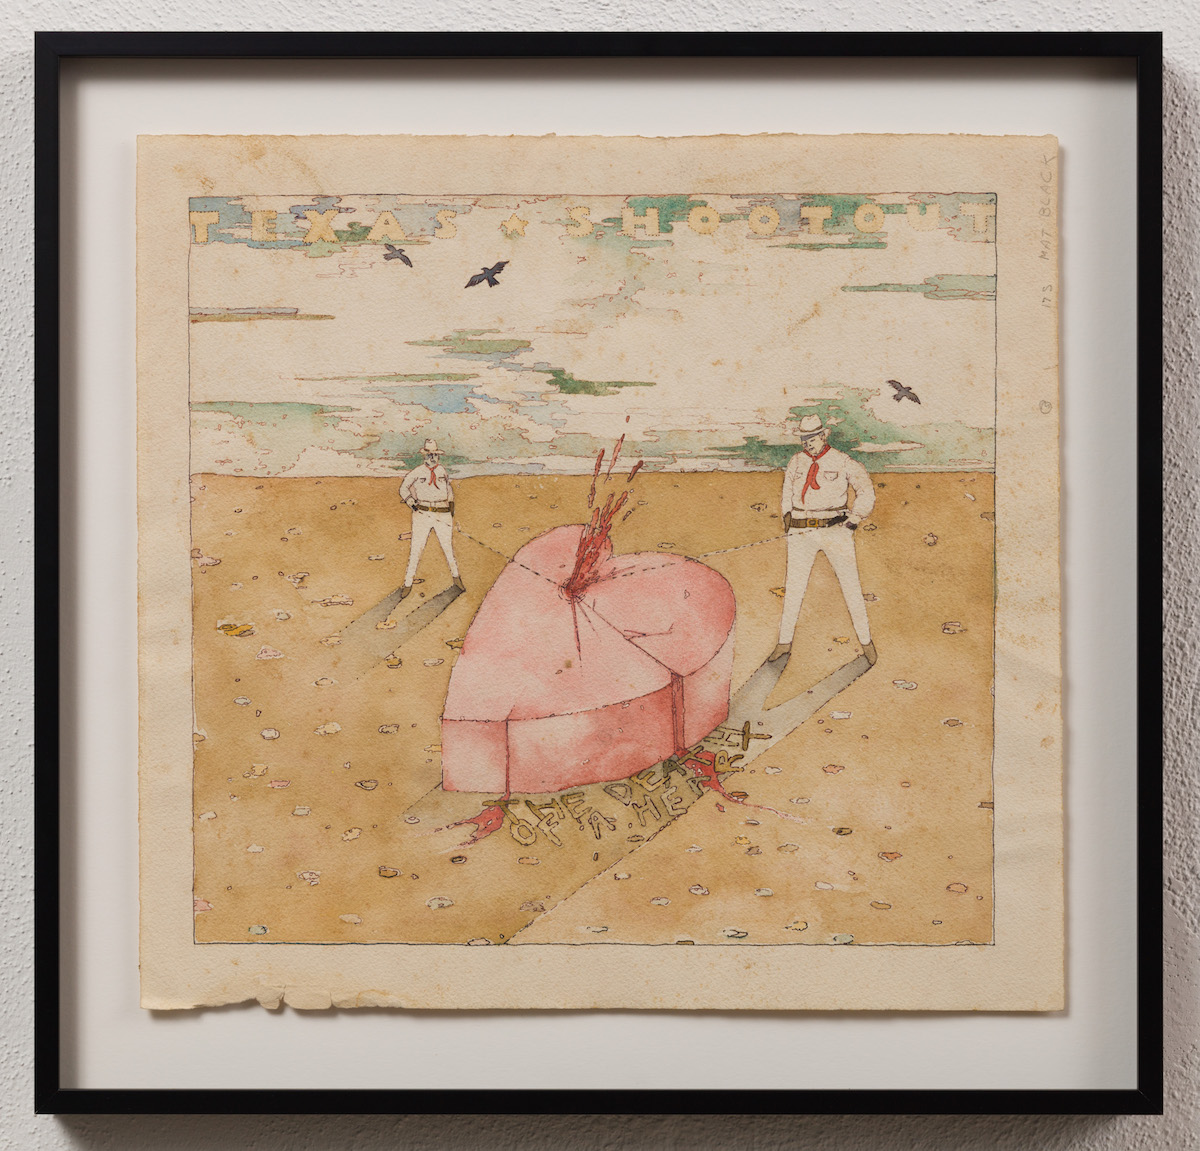 Candy Jernigan's Whimsical Works on Paper at Commercial Street in Provincetown -